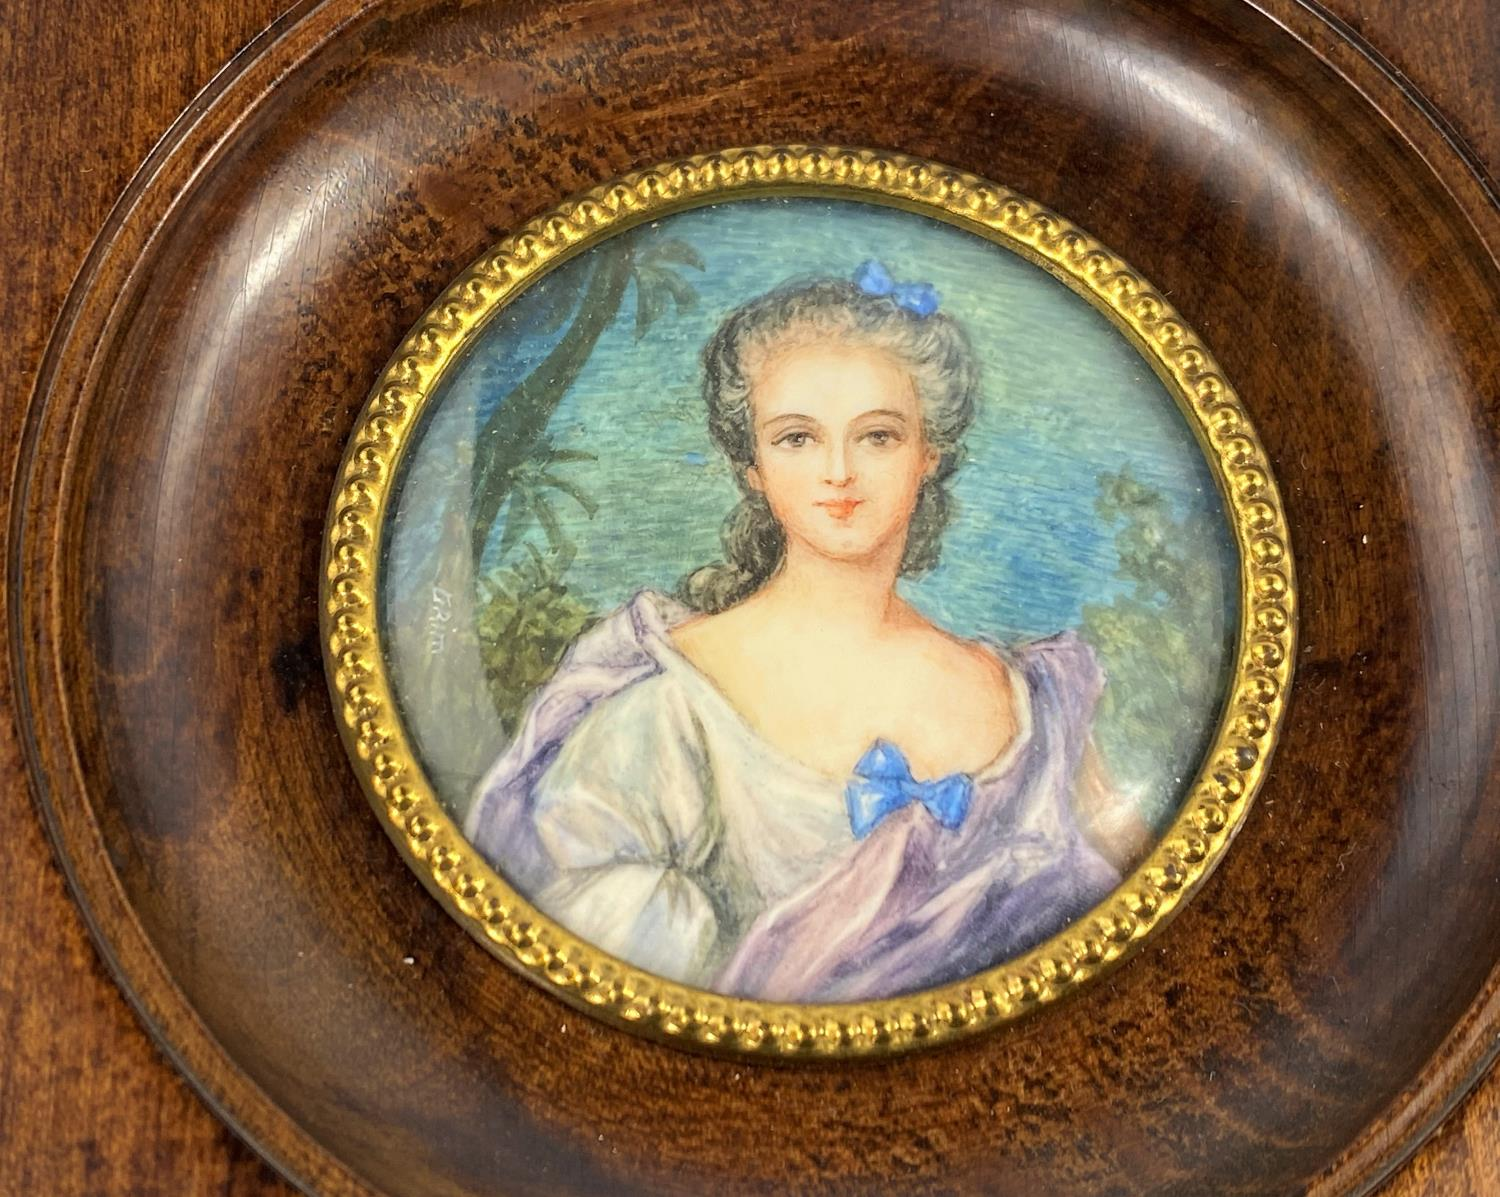 Two hand painted portrait miniatures: Mdme de Pompadour and Madame Adelaide, signed, diameter 55 mm, - Image 2 of 4